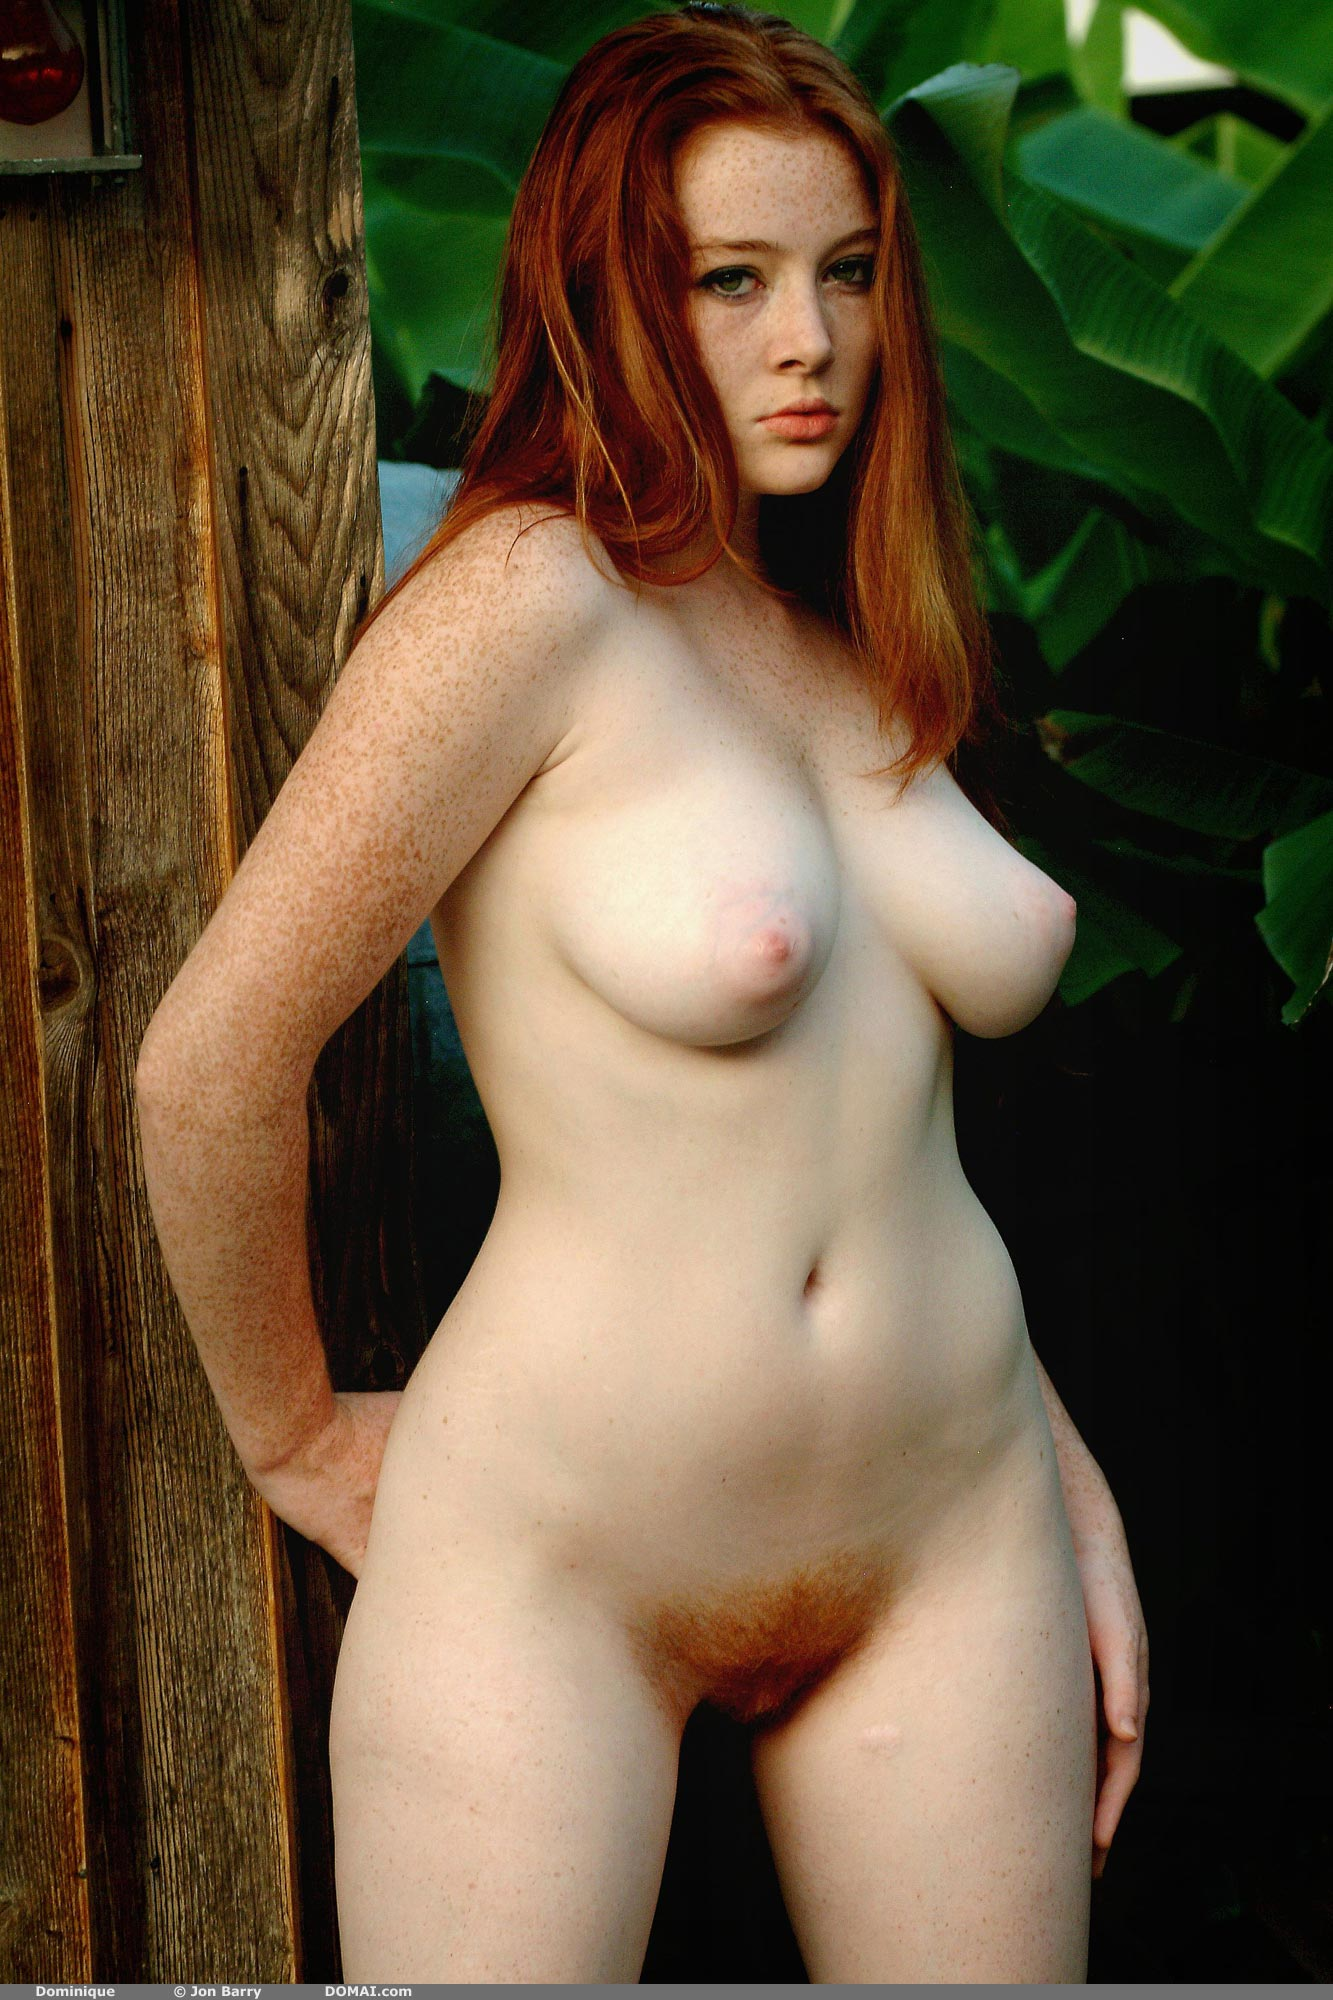 Red hair female nude — photo 14